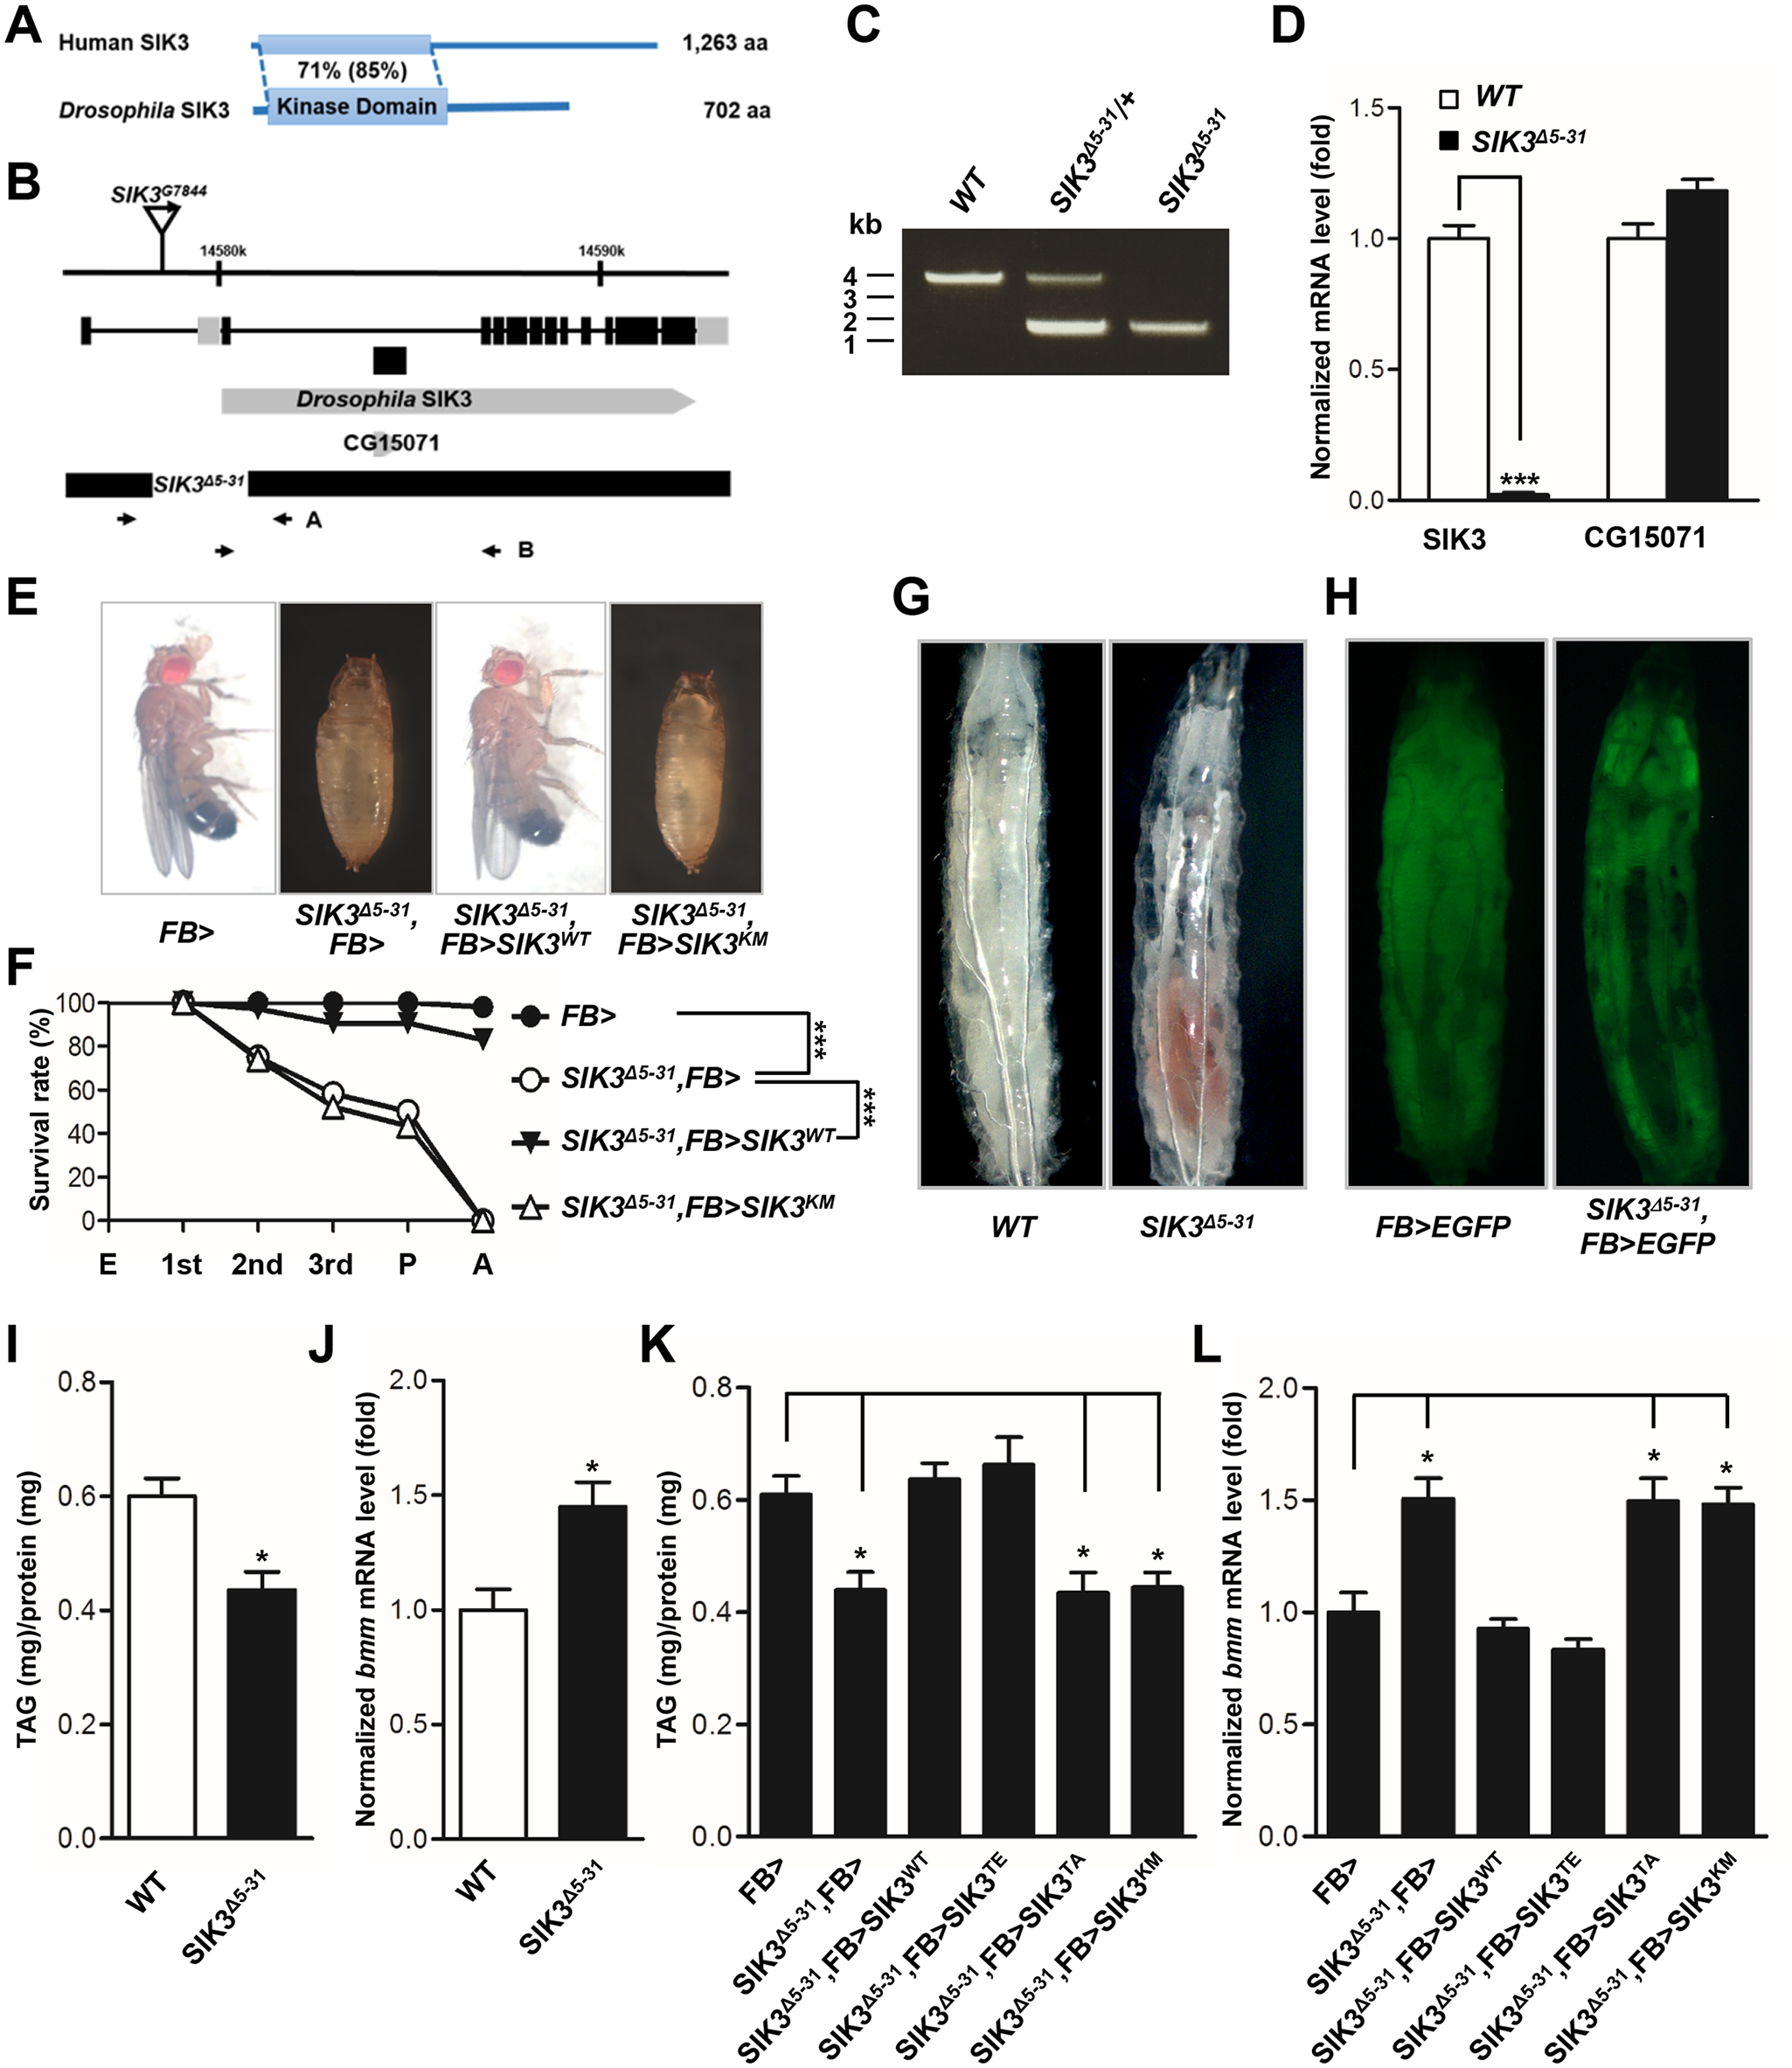 SIK3 null mutant is defective in lipid homeostasis and storage.